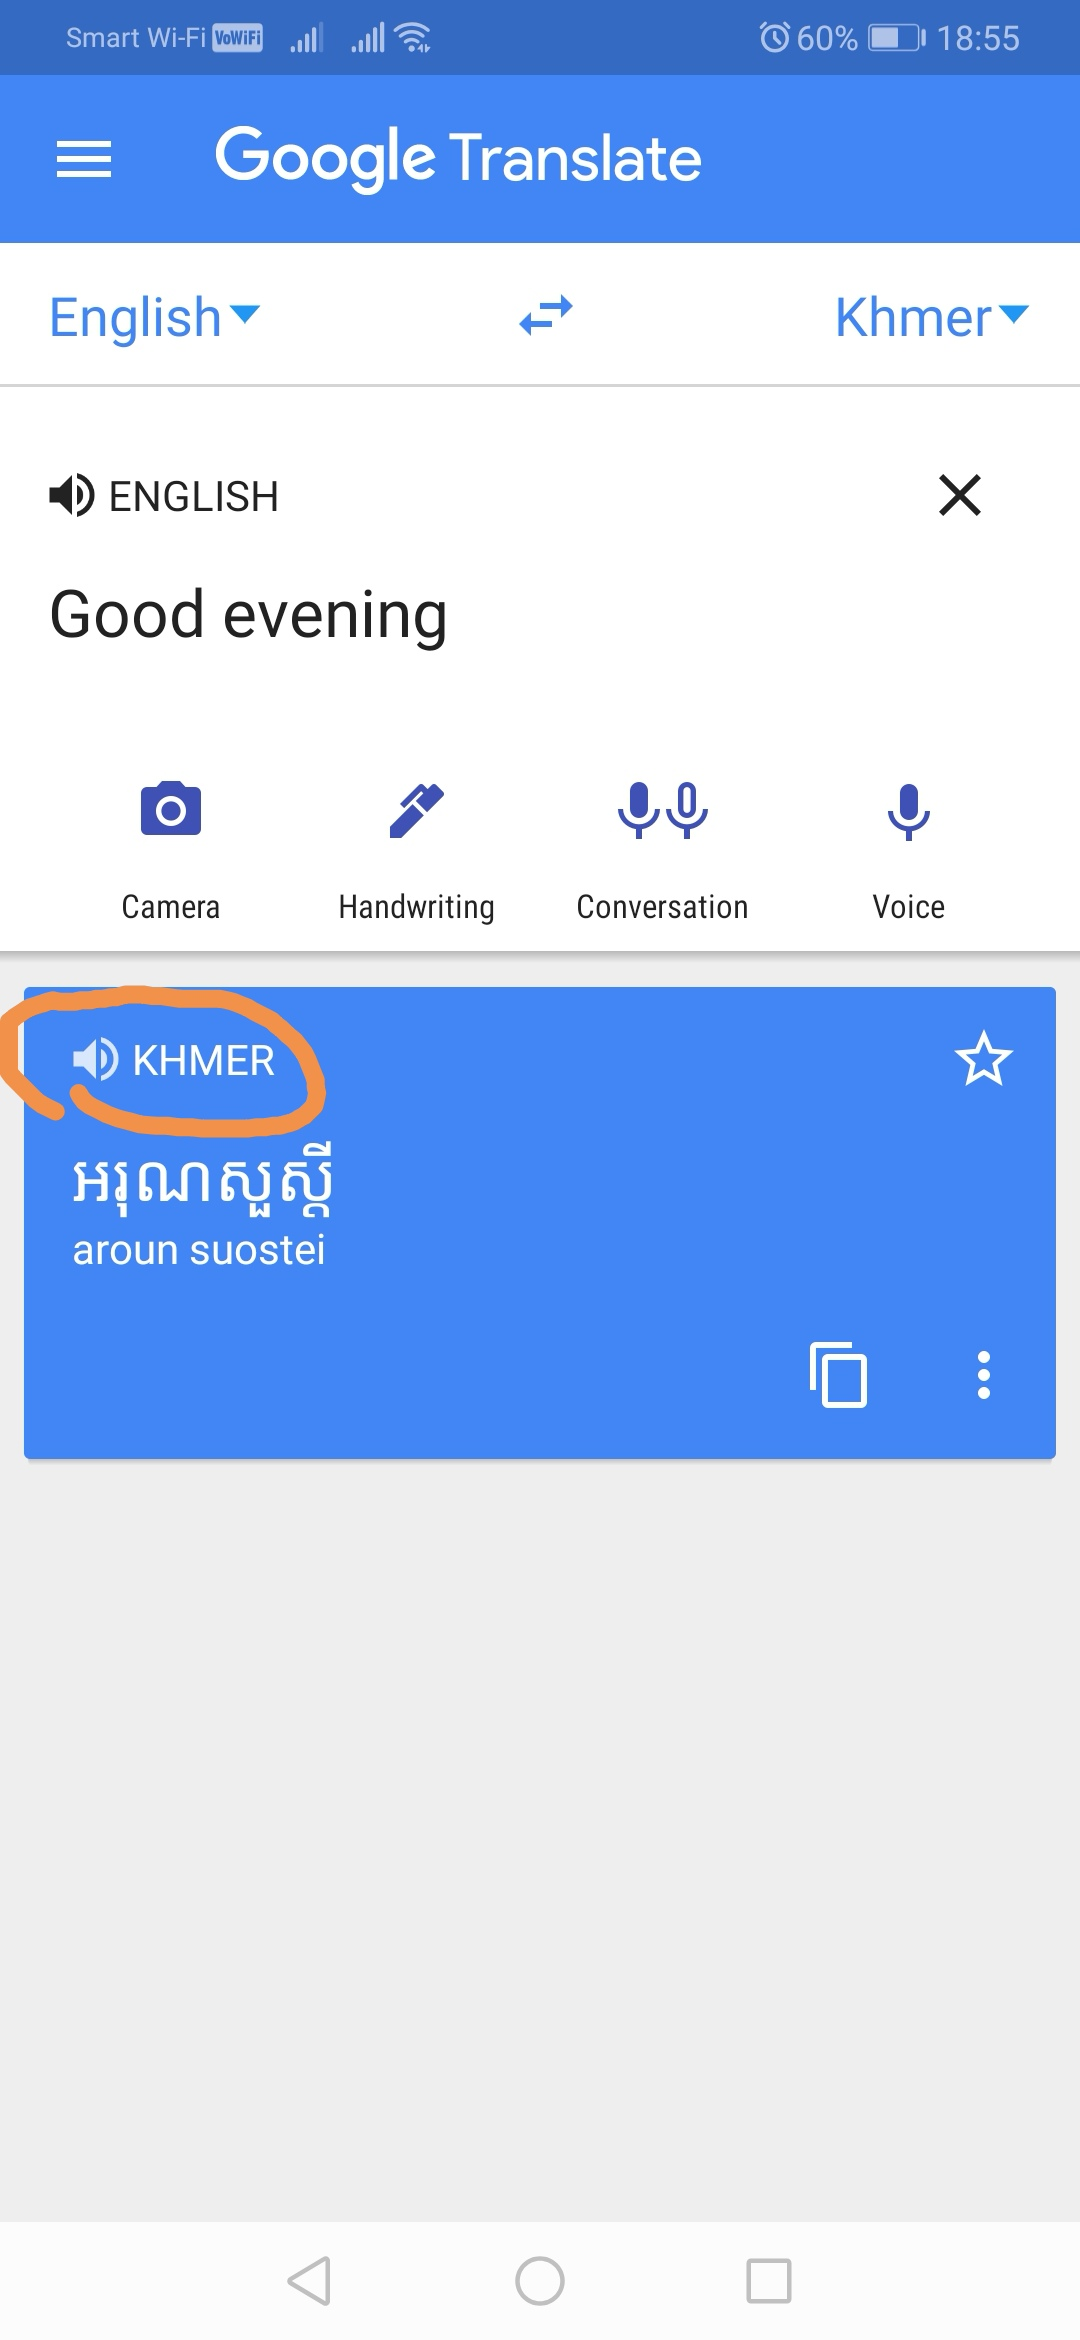 Anymore Hear Khmer Language Voice Over